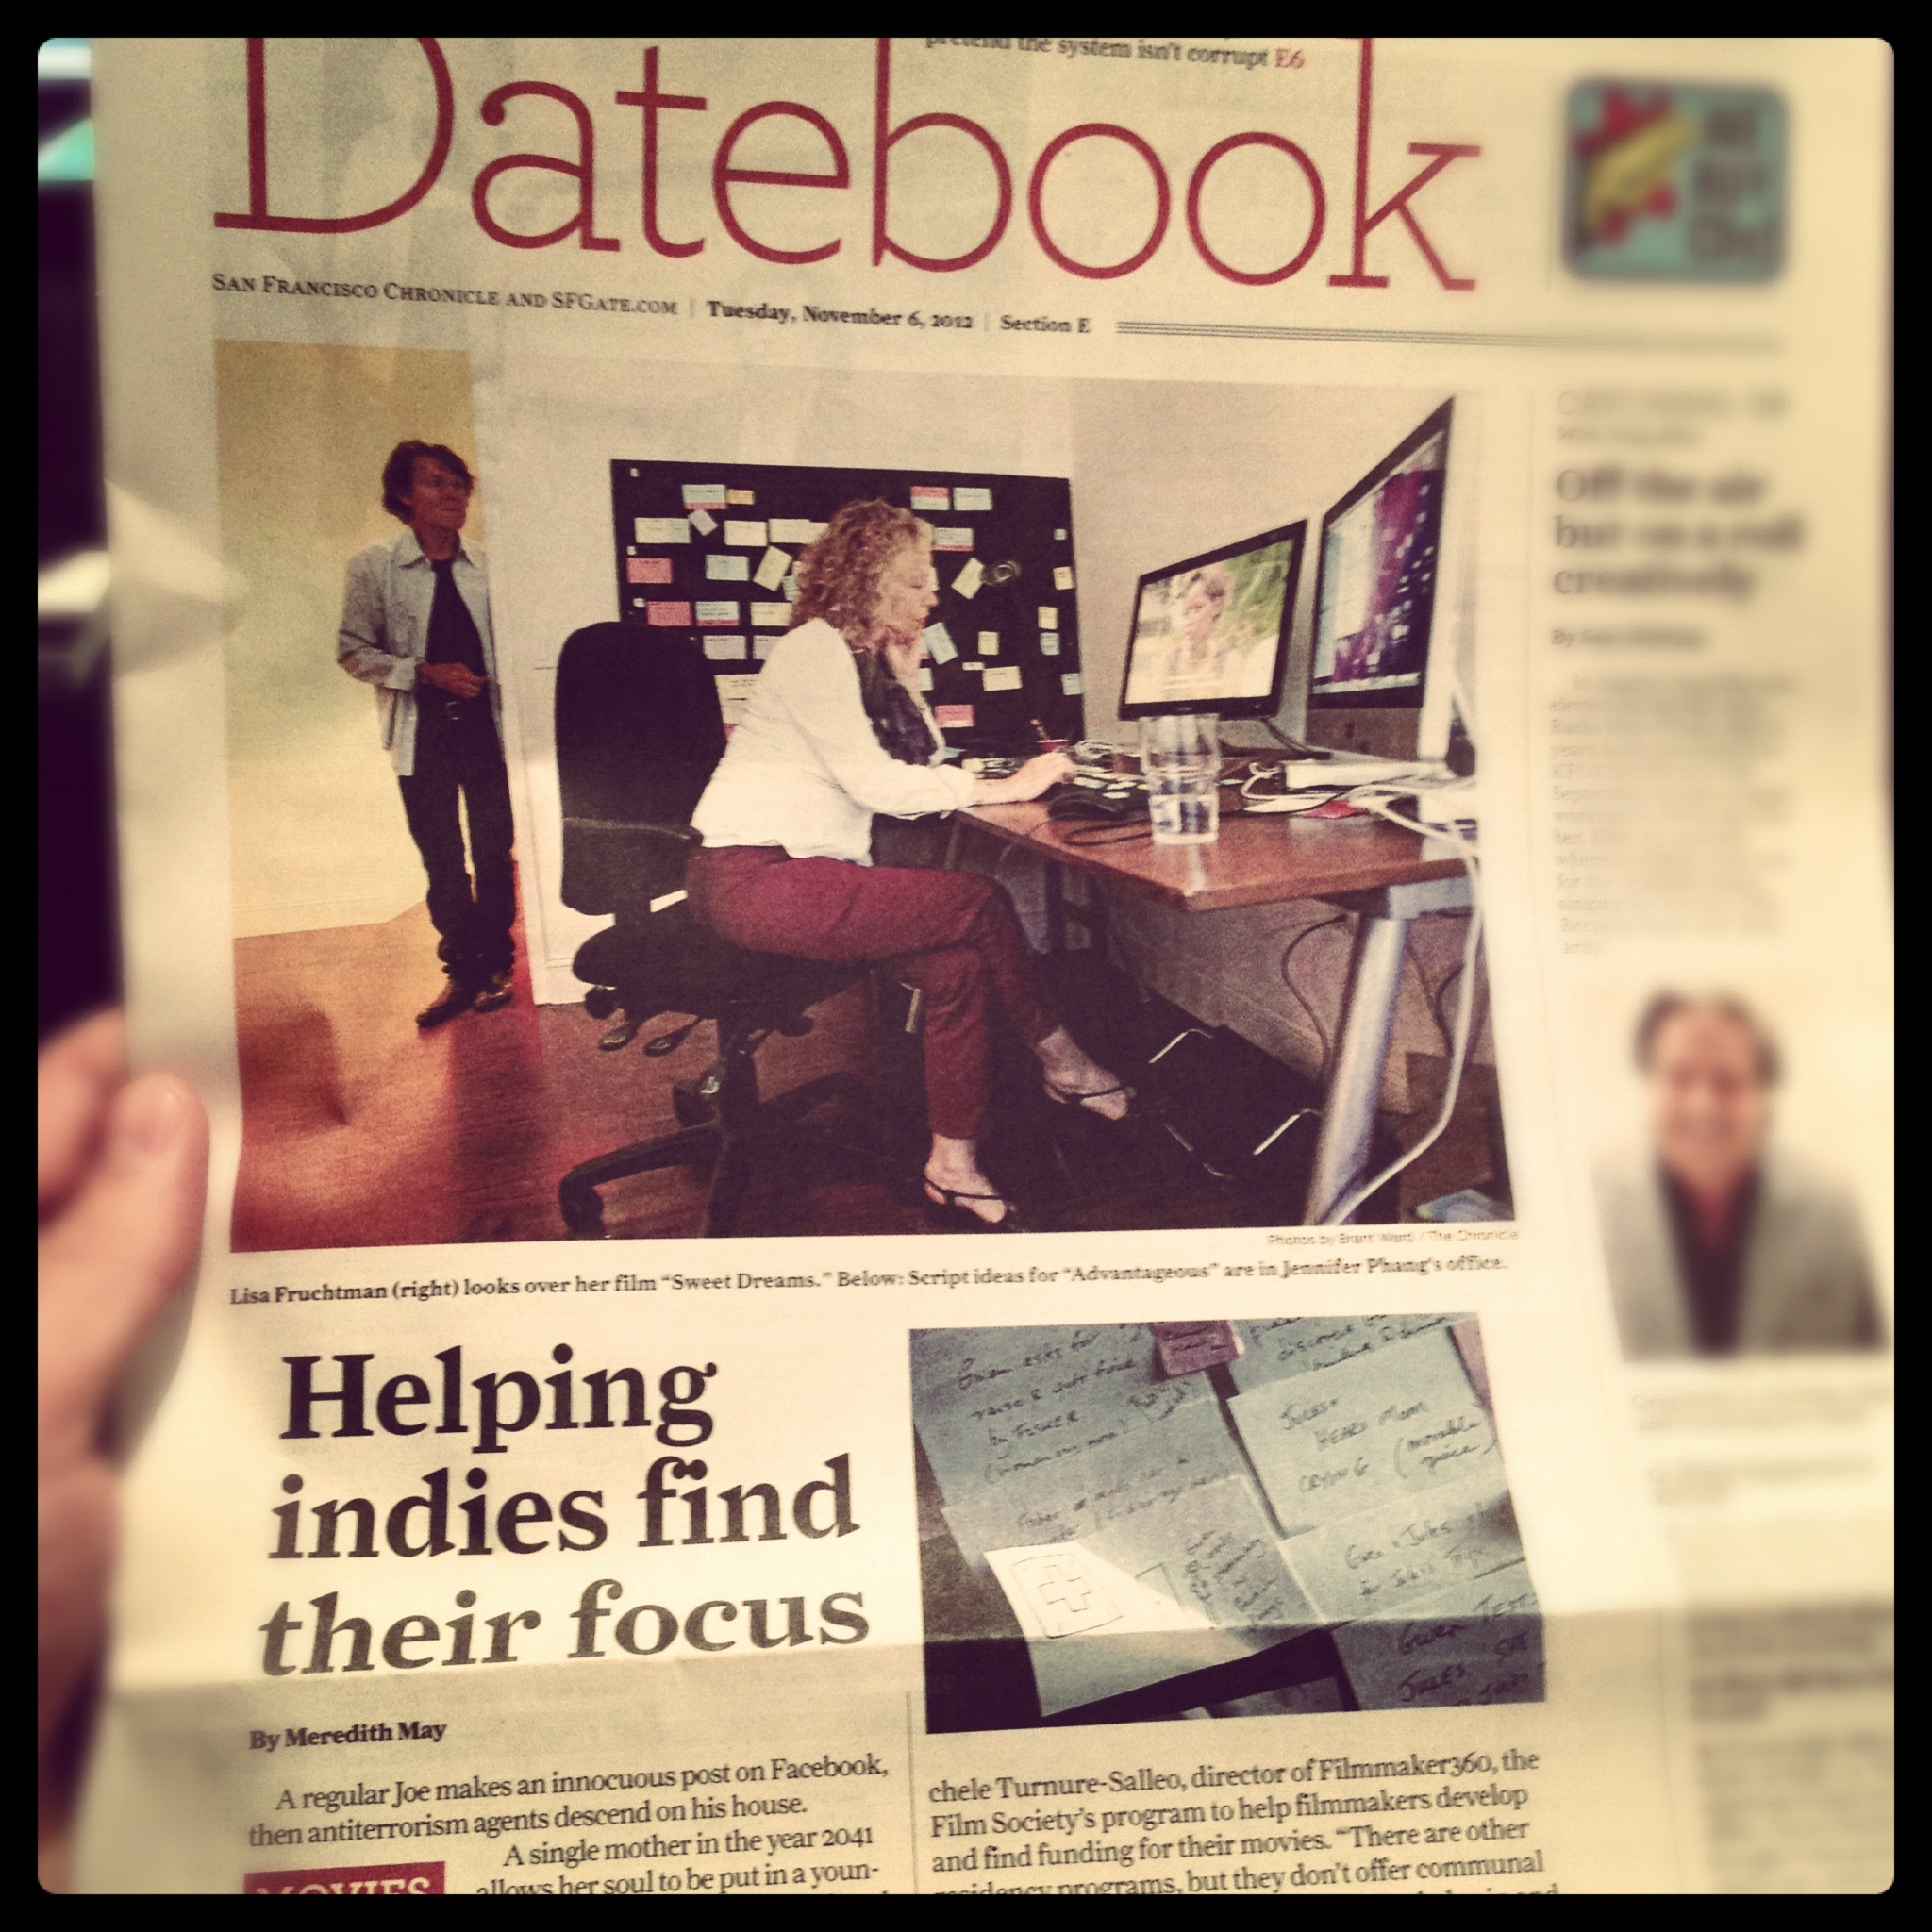 Front page of Datebook in SF Chronicle, 11/6/12